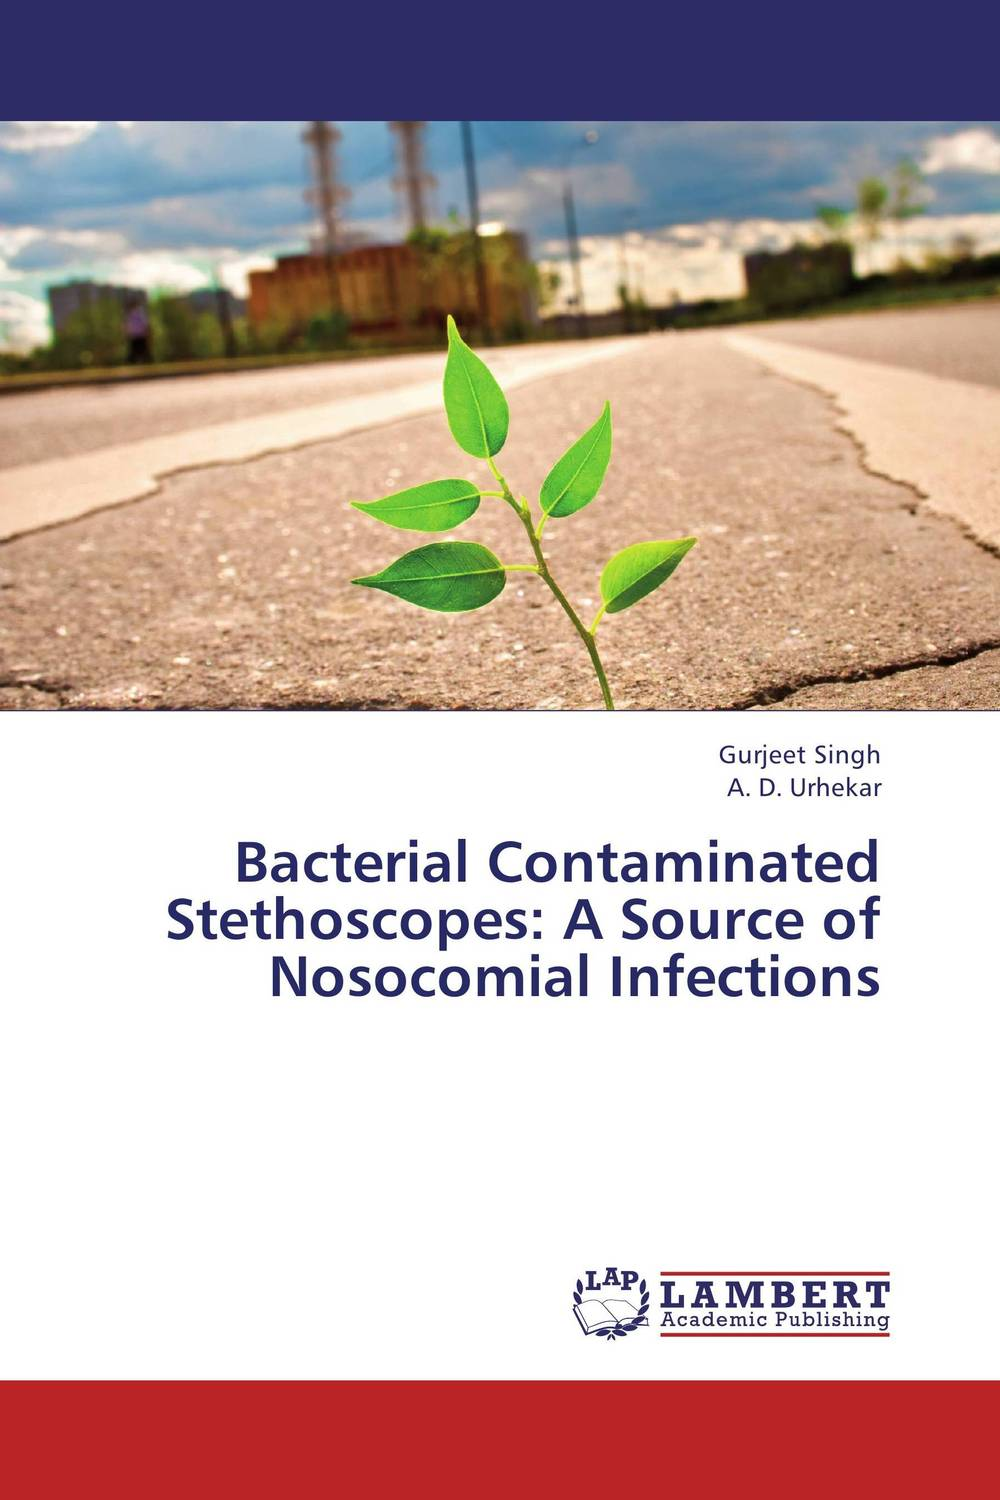 Bacterial Contaminated Stethoscopes: A Source of Nosocomial Infections analysis of bacterial colonization on gypsum casts